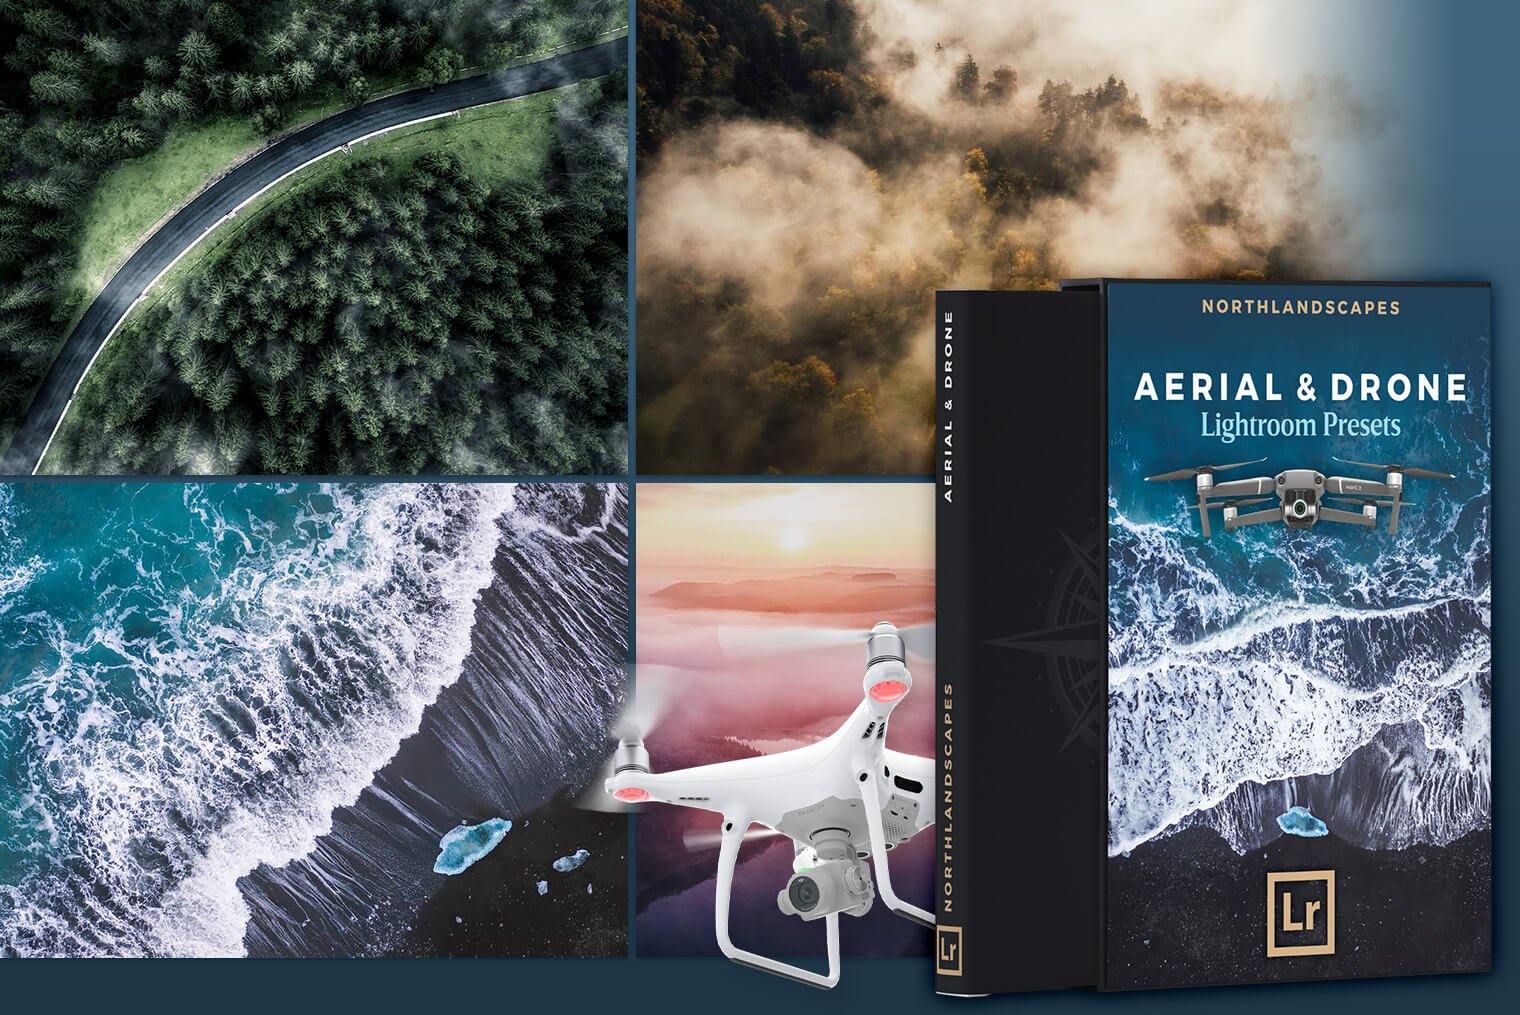 Aerial & Drone Lightroom Presets